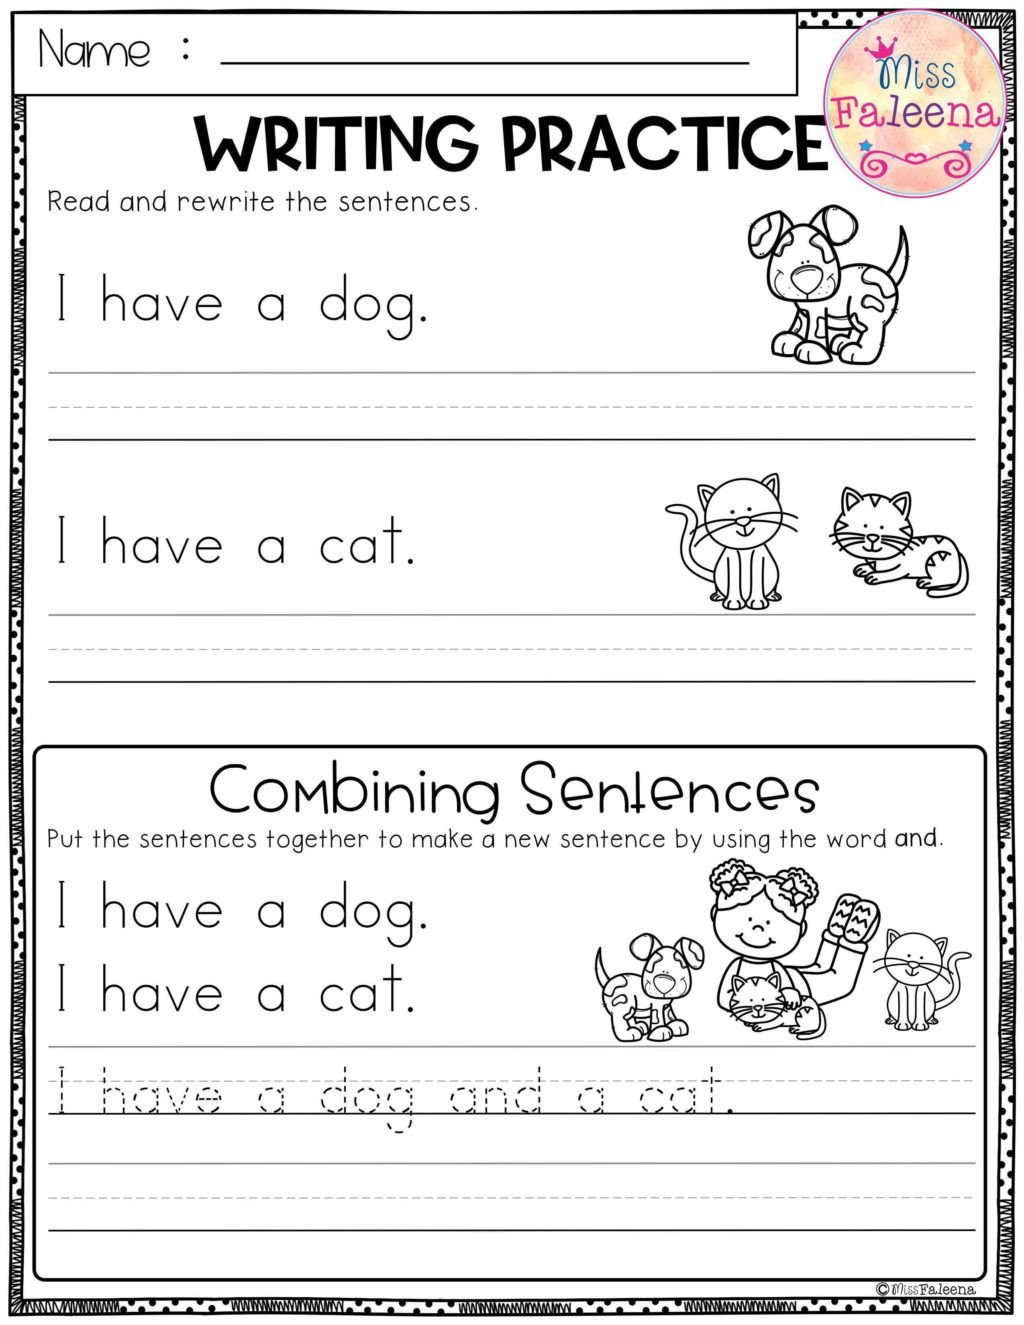 excelent free writing worksheets practice bining sentences best software for 1024x1325